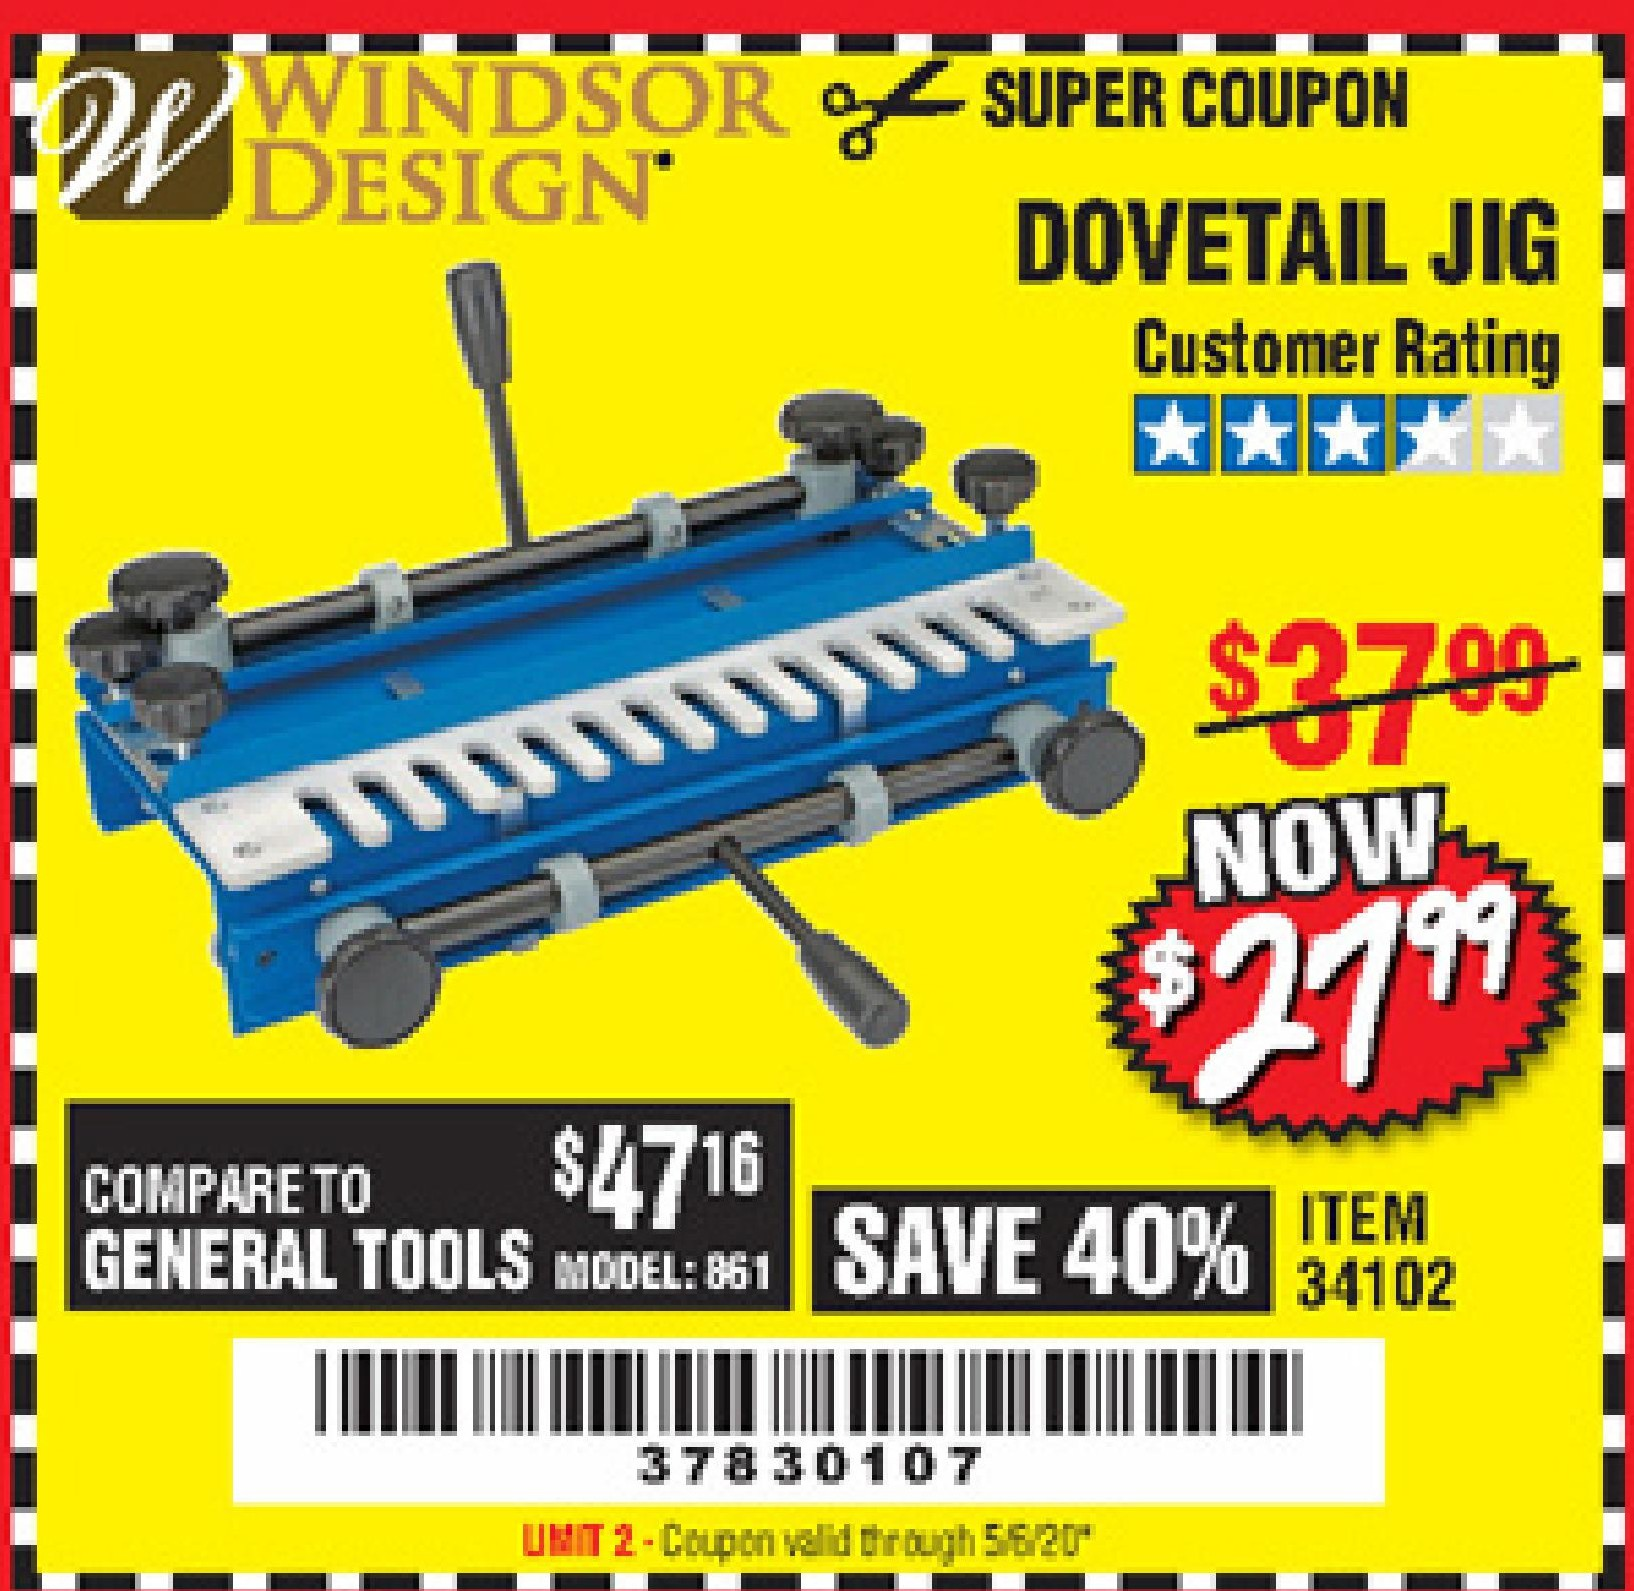 Harbor Freight DOVETAIL JIG / MACHINE coupon